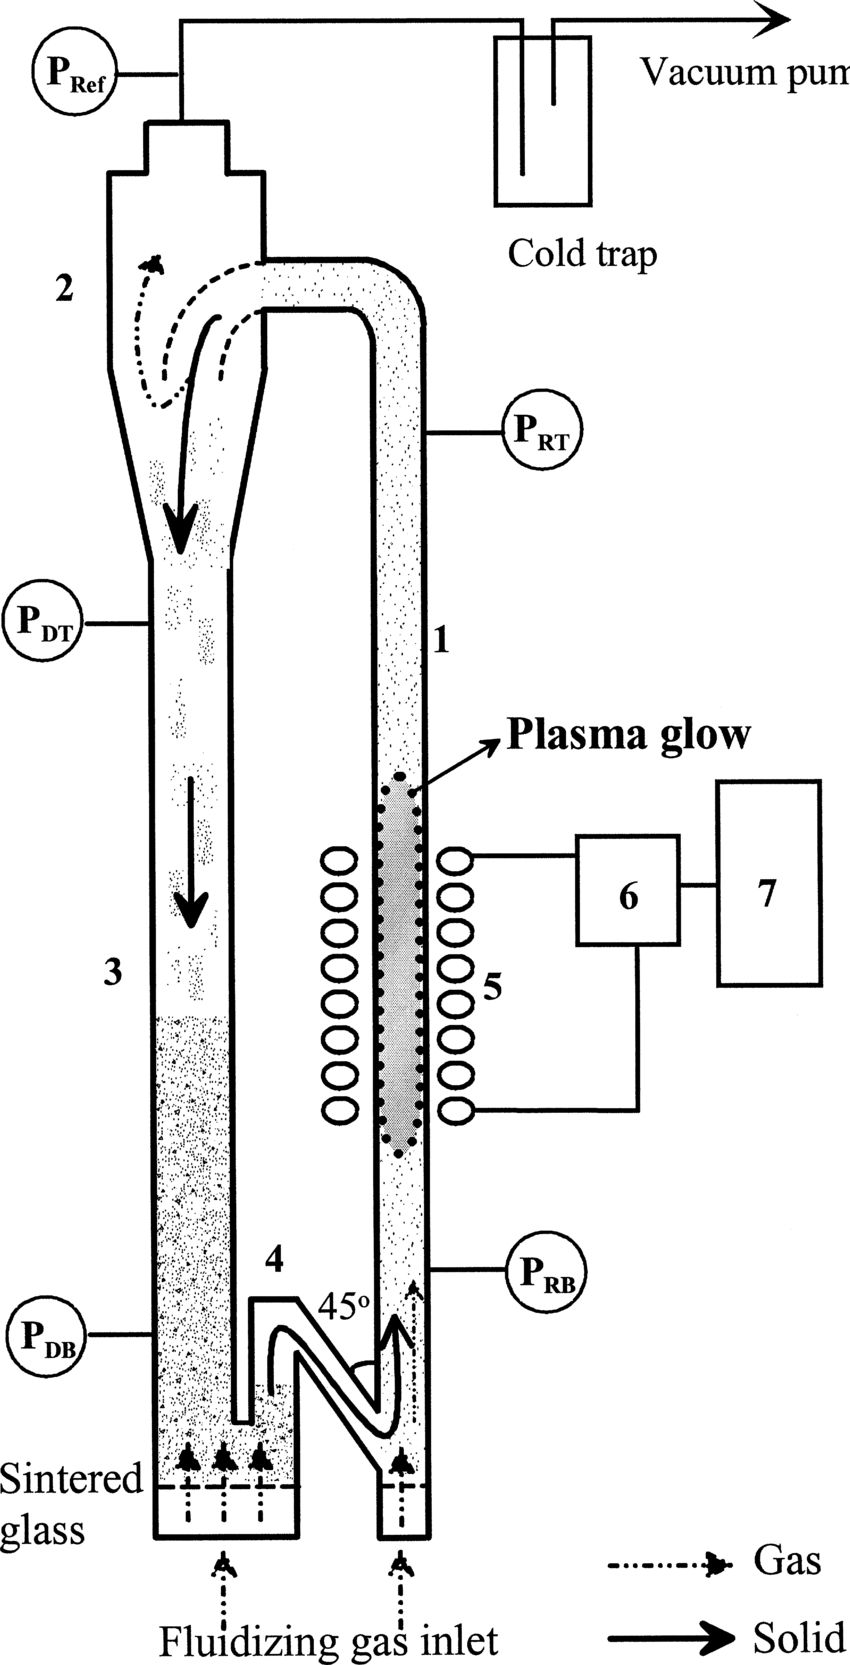 Schematic diagram of experimental apparatus: 1. riser, 2